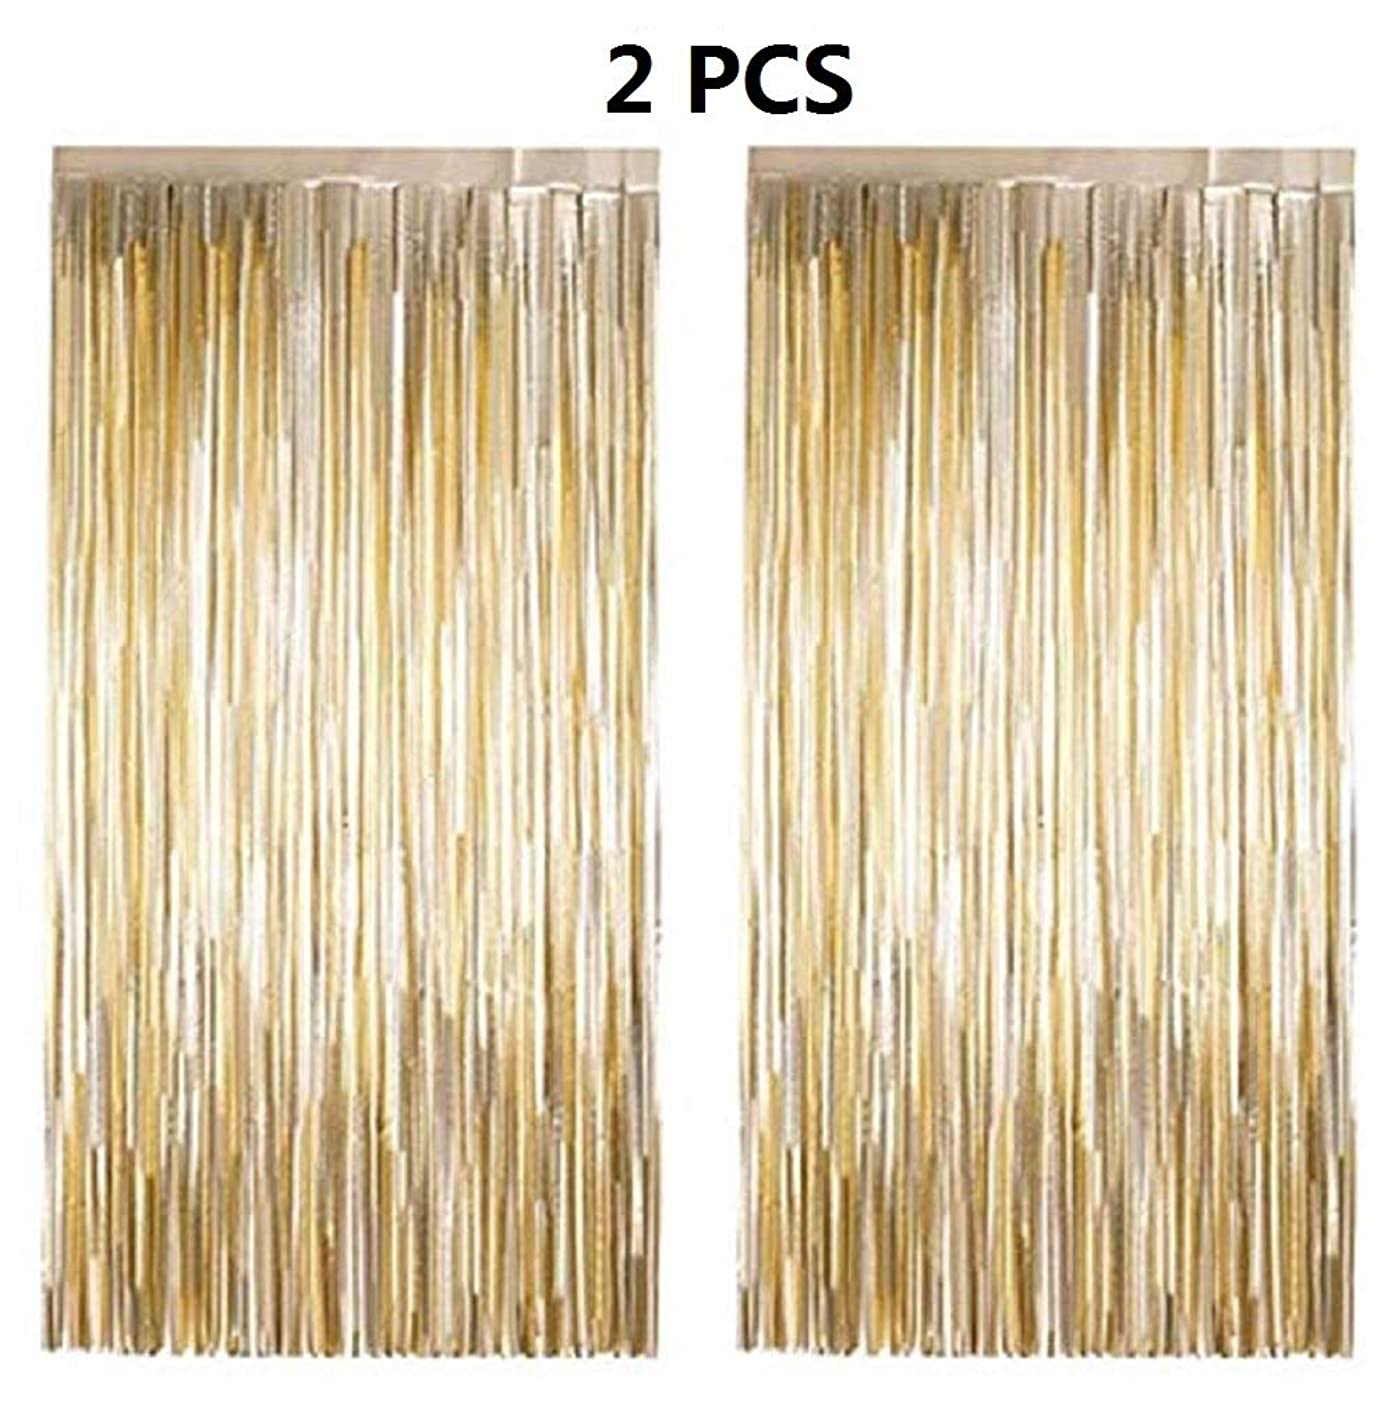 NPLUX 2PCS 3' X 6' Gold Metallic Tinsel Foil Fringe Curtain for Wedding Birthday Gastby Party Decoration Backdrop